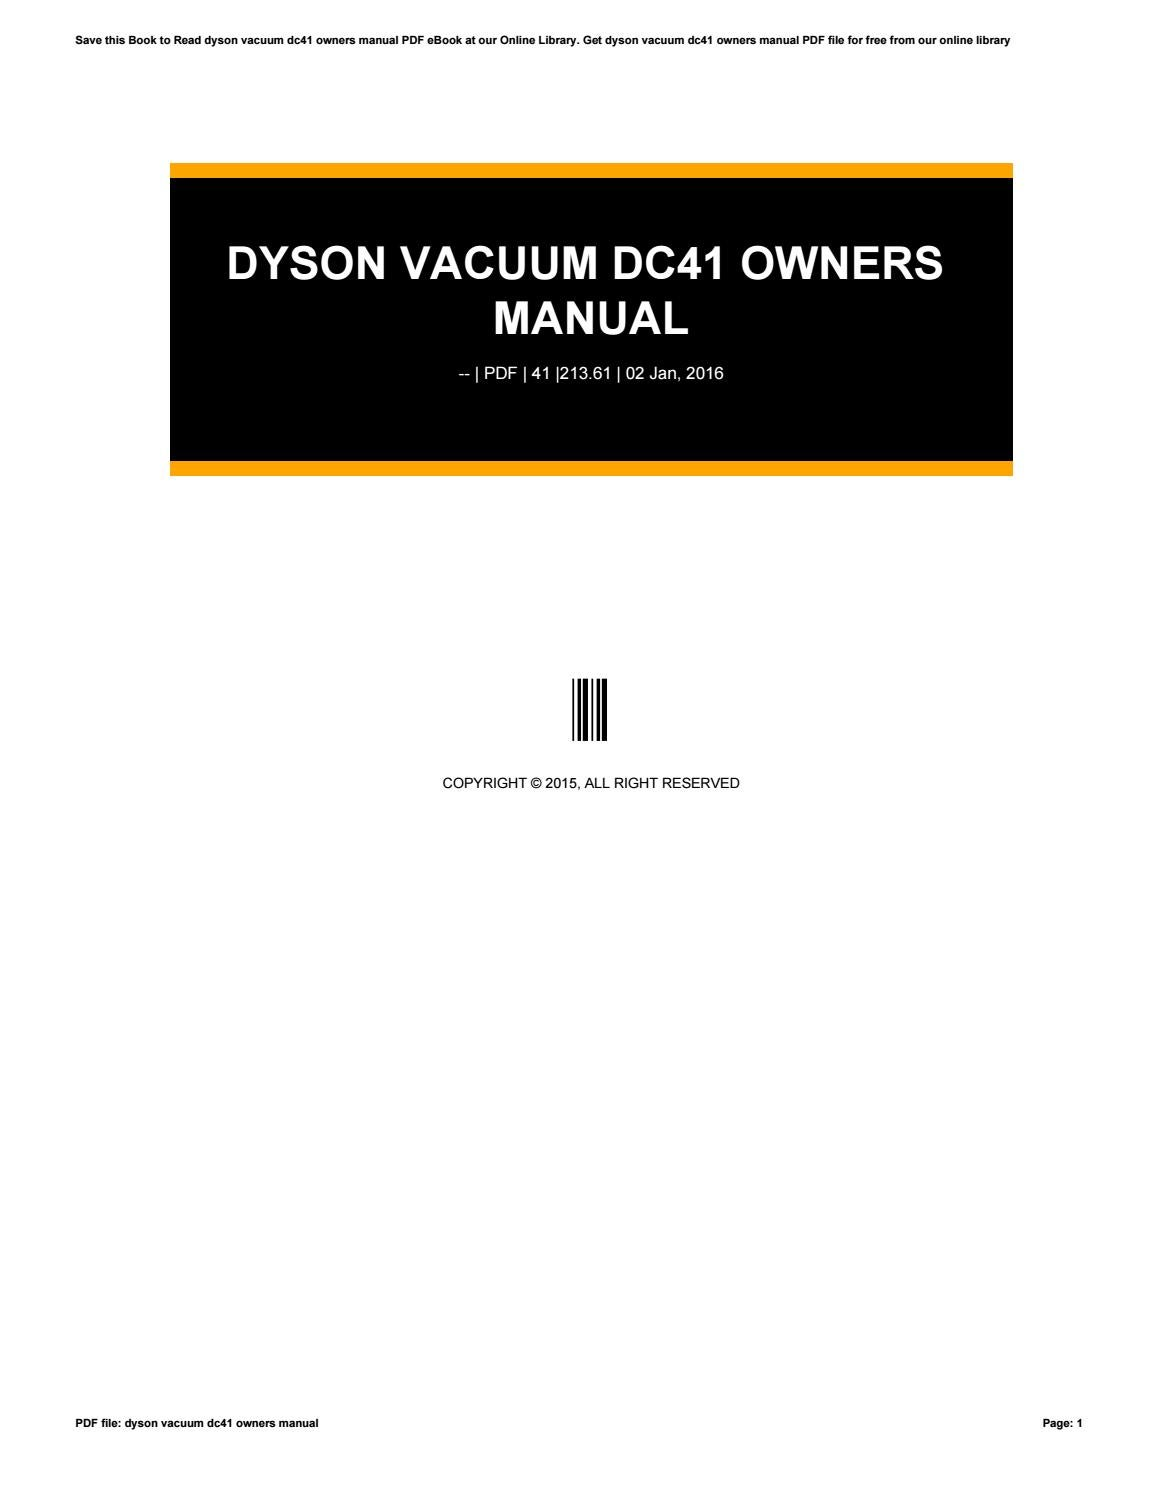 an introduction to the dyson company Dyson ltd today offers a wide range of appliances: vacuum  and dyson  handles them all well by introducing add-ons to the core product.